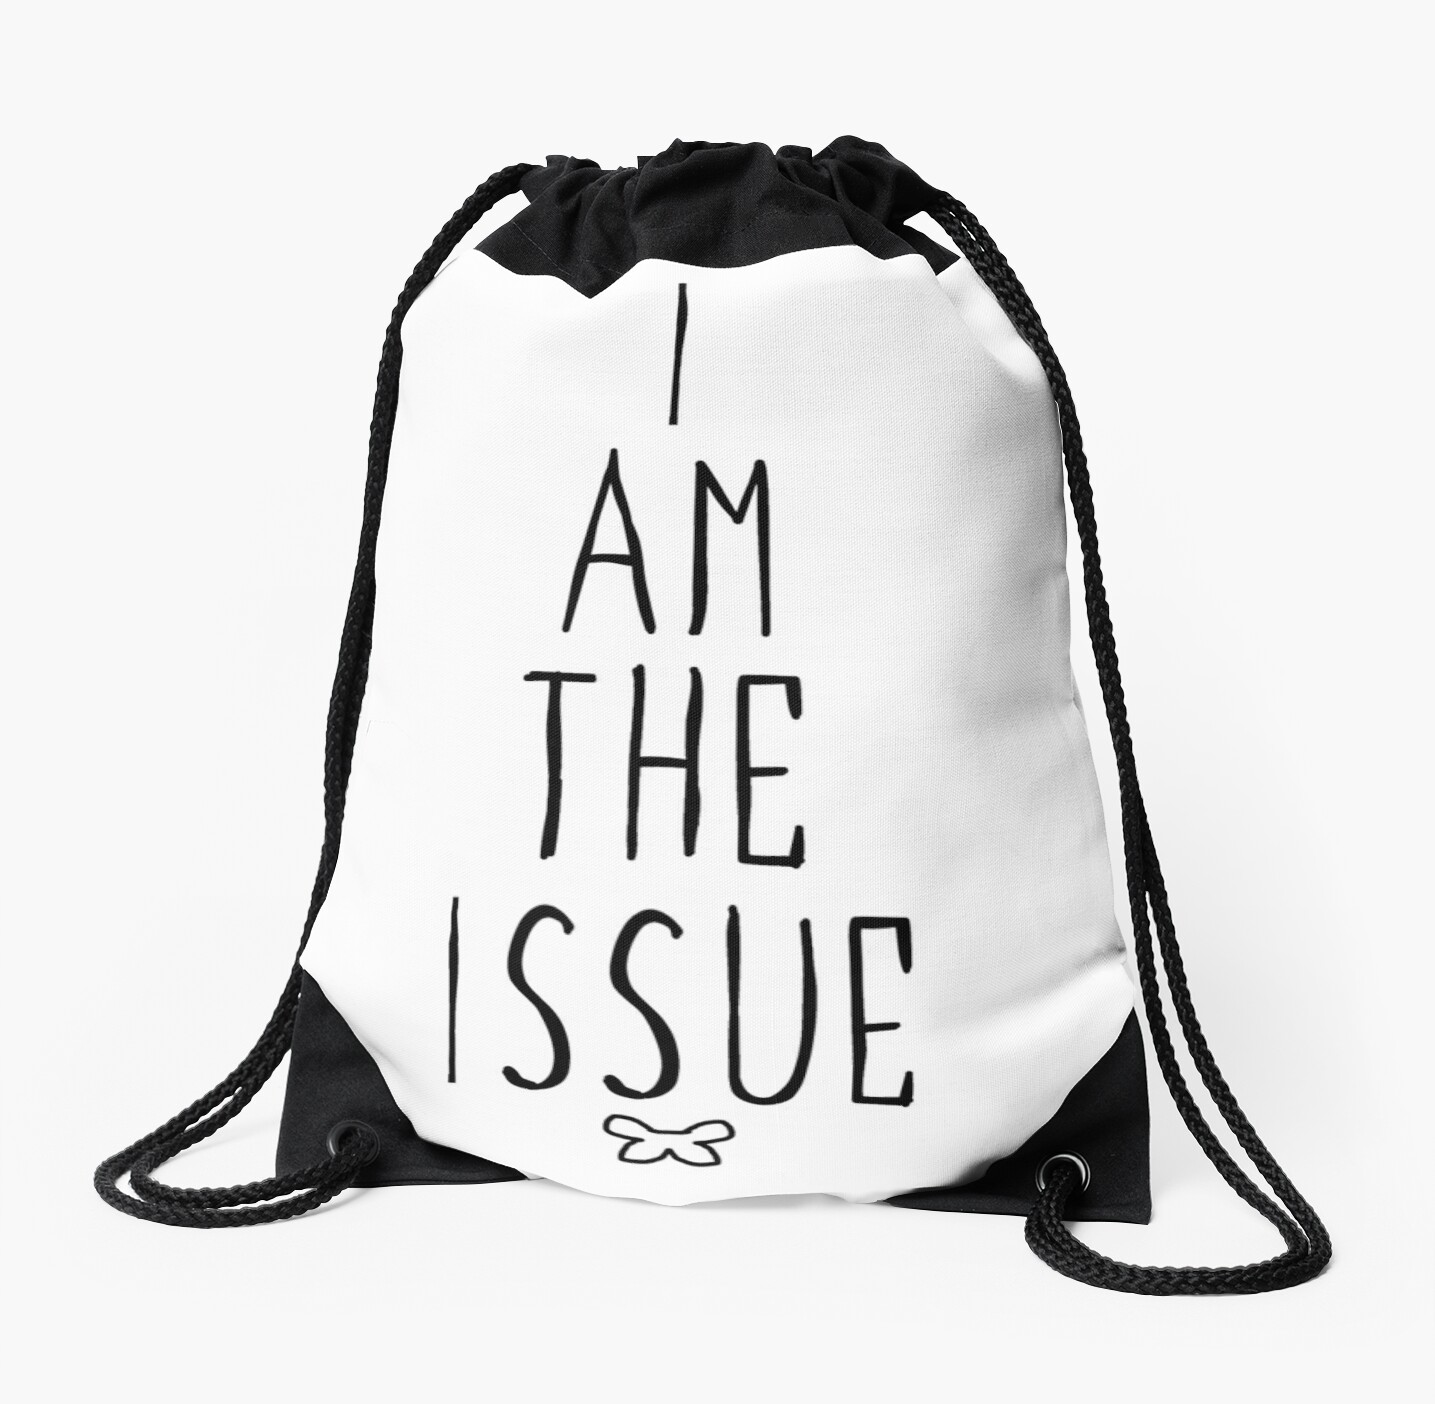 I AM THE ISSUE - White